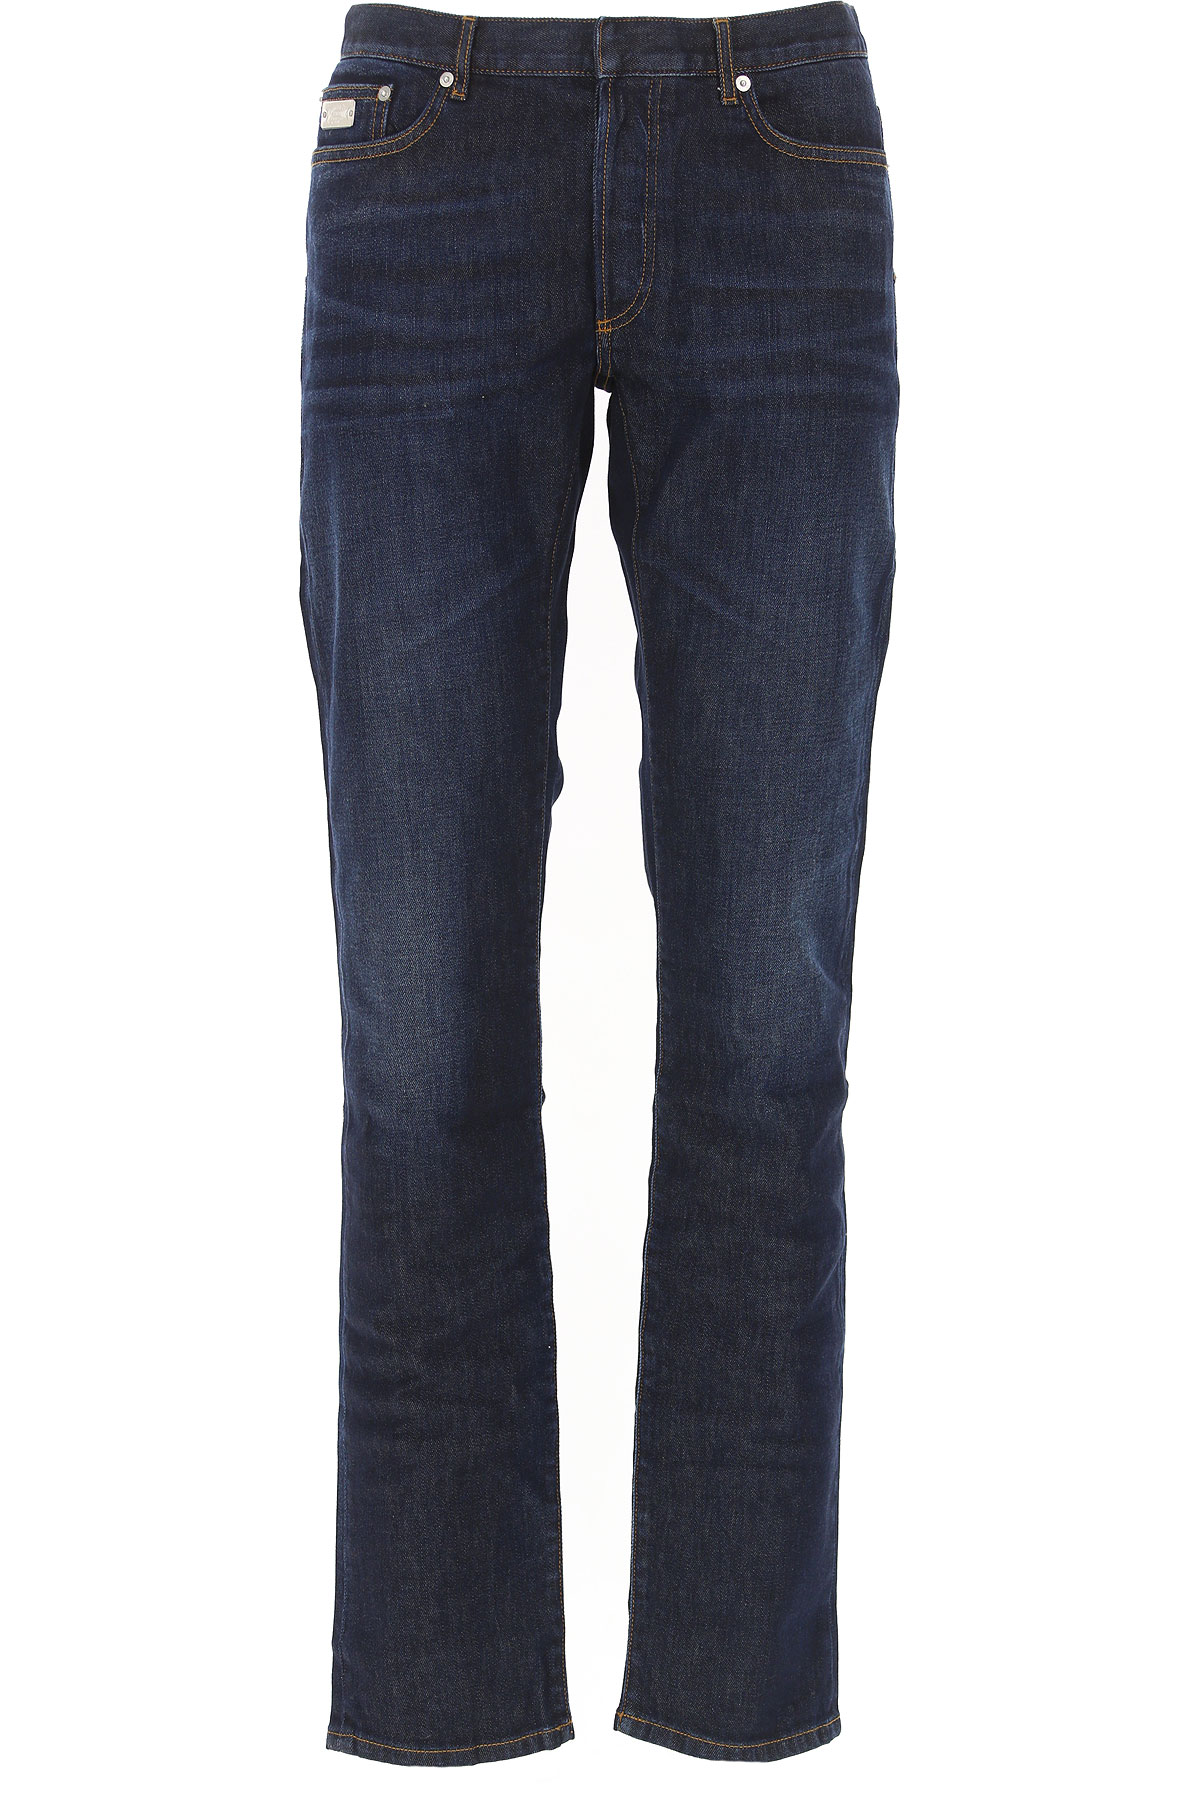 Christian Dior Jeans On Sale in Outlet, Blue Marine, Cotton, 2019, 31 33